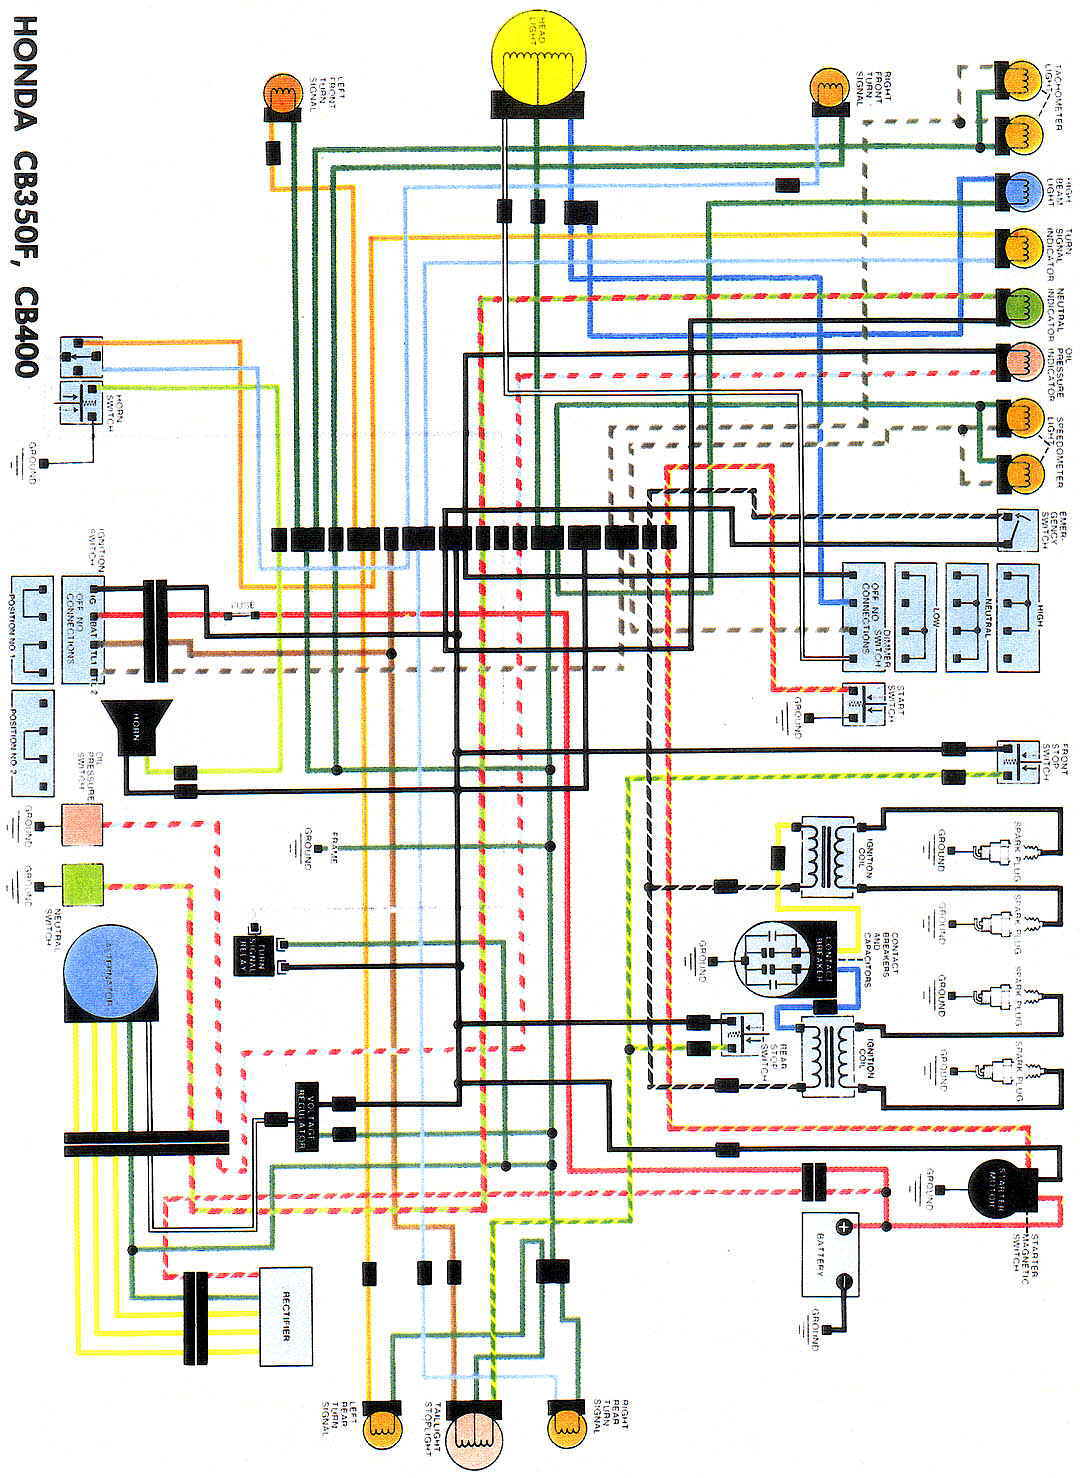 CB350F_CB400WiringDiag?resize=665%2C910 suzuki bandit wiring diagram the best wiring diagram 2017 Basic Electrical Wiring Diagrams at bayanpartner.co